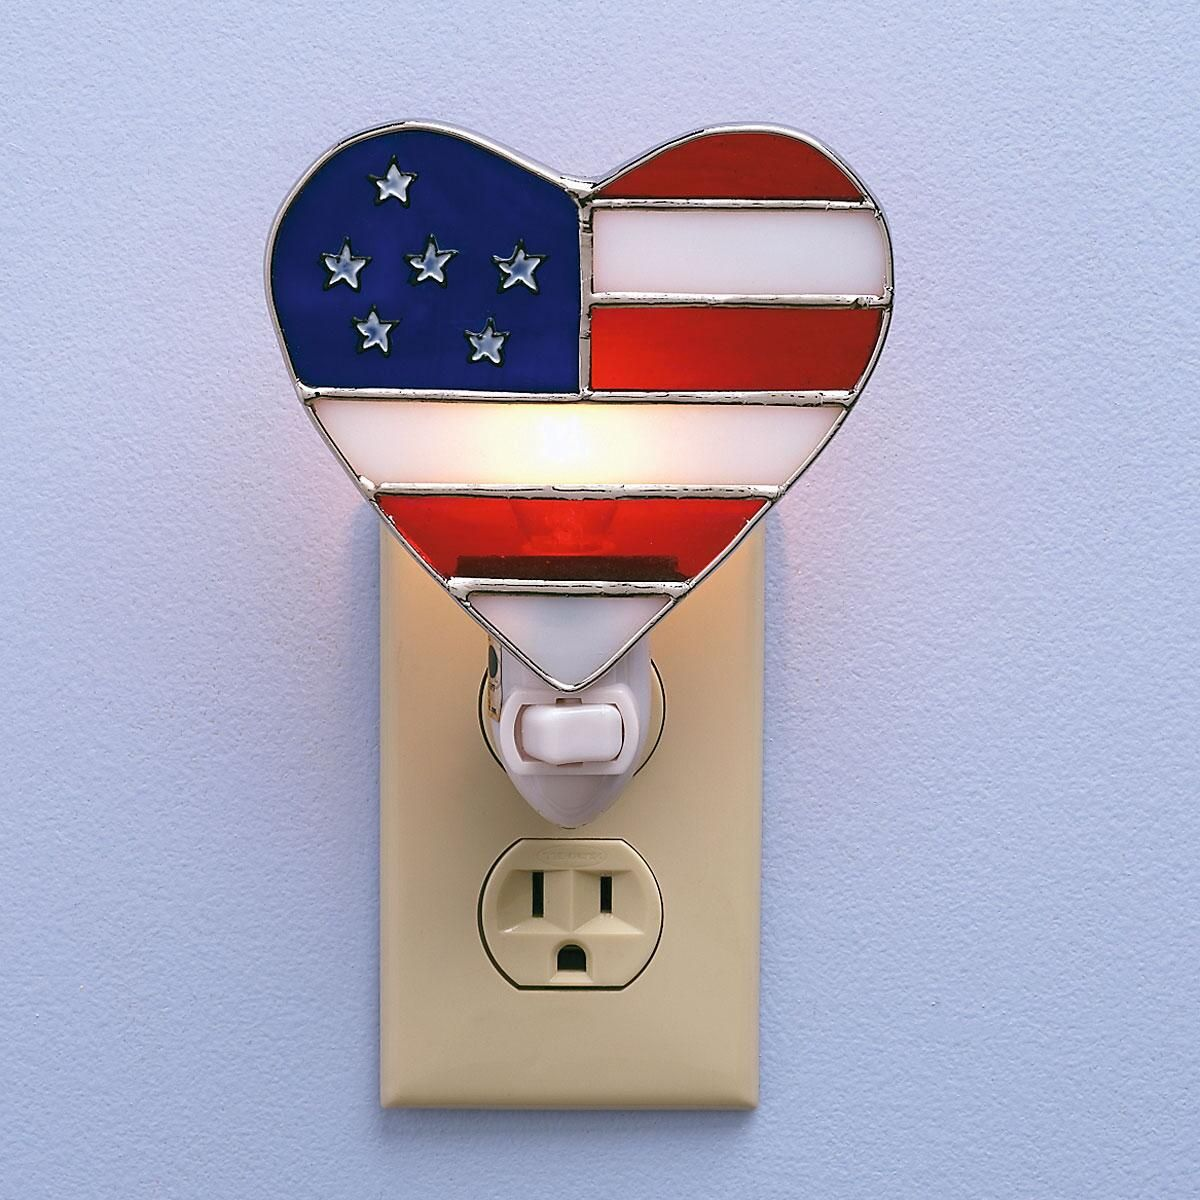 Patriotic Heart Night Light